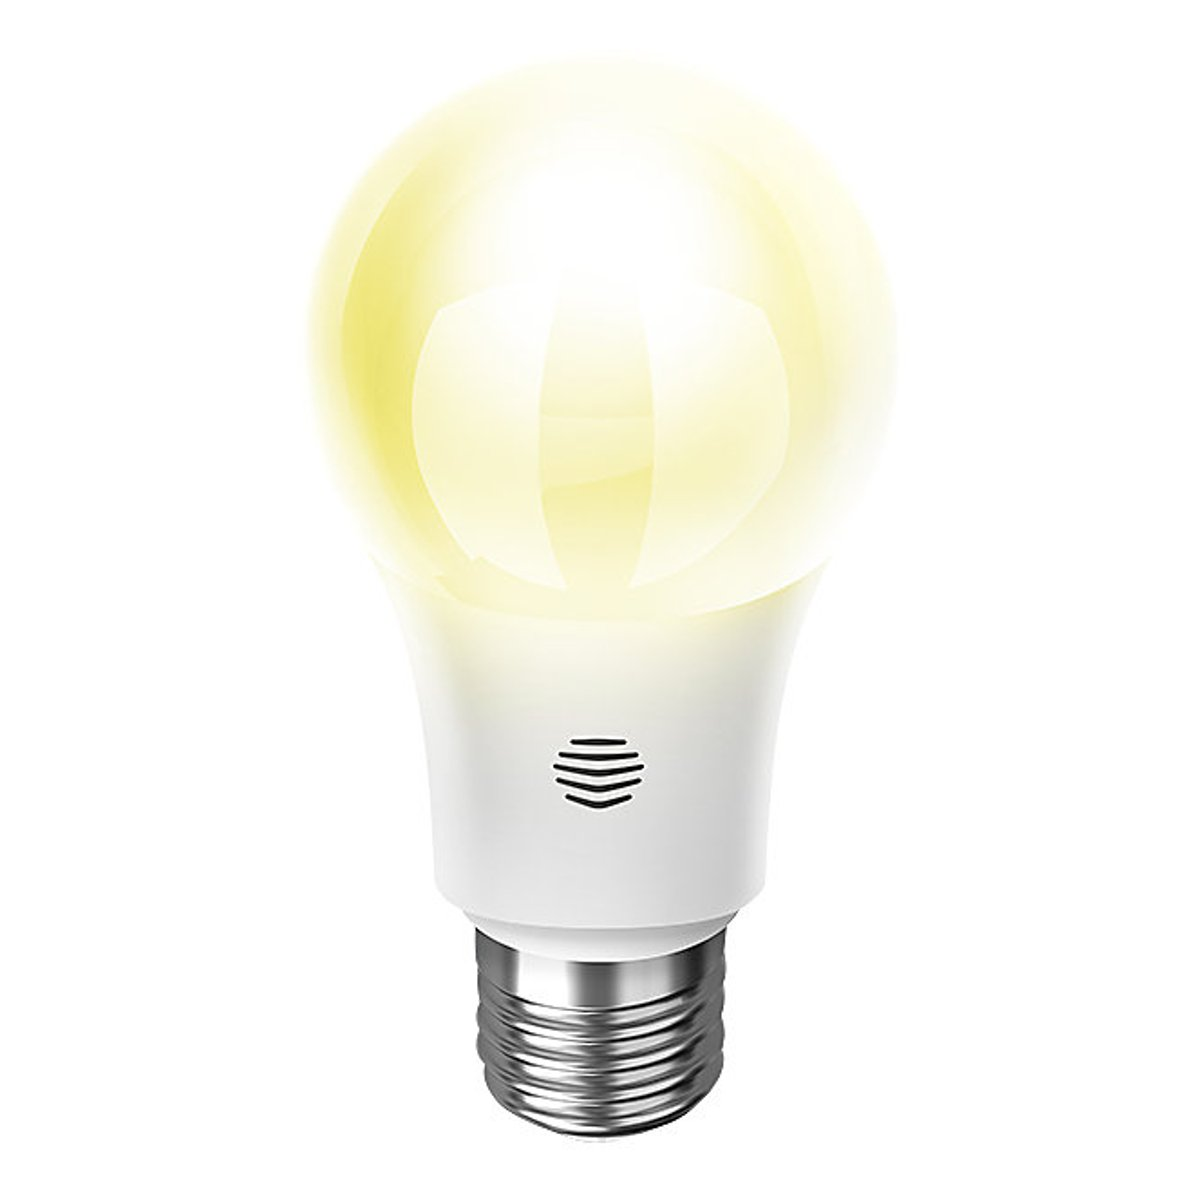 Hive Lights Dimmable B22 Bayonet Smart Bulb Works With Amazon Alexa Build A Light Circuit Science The Lab Lighting